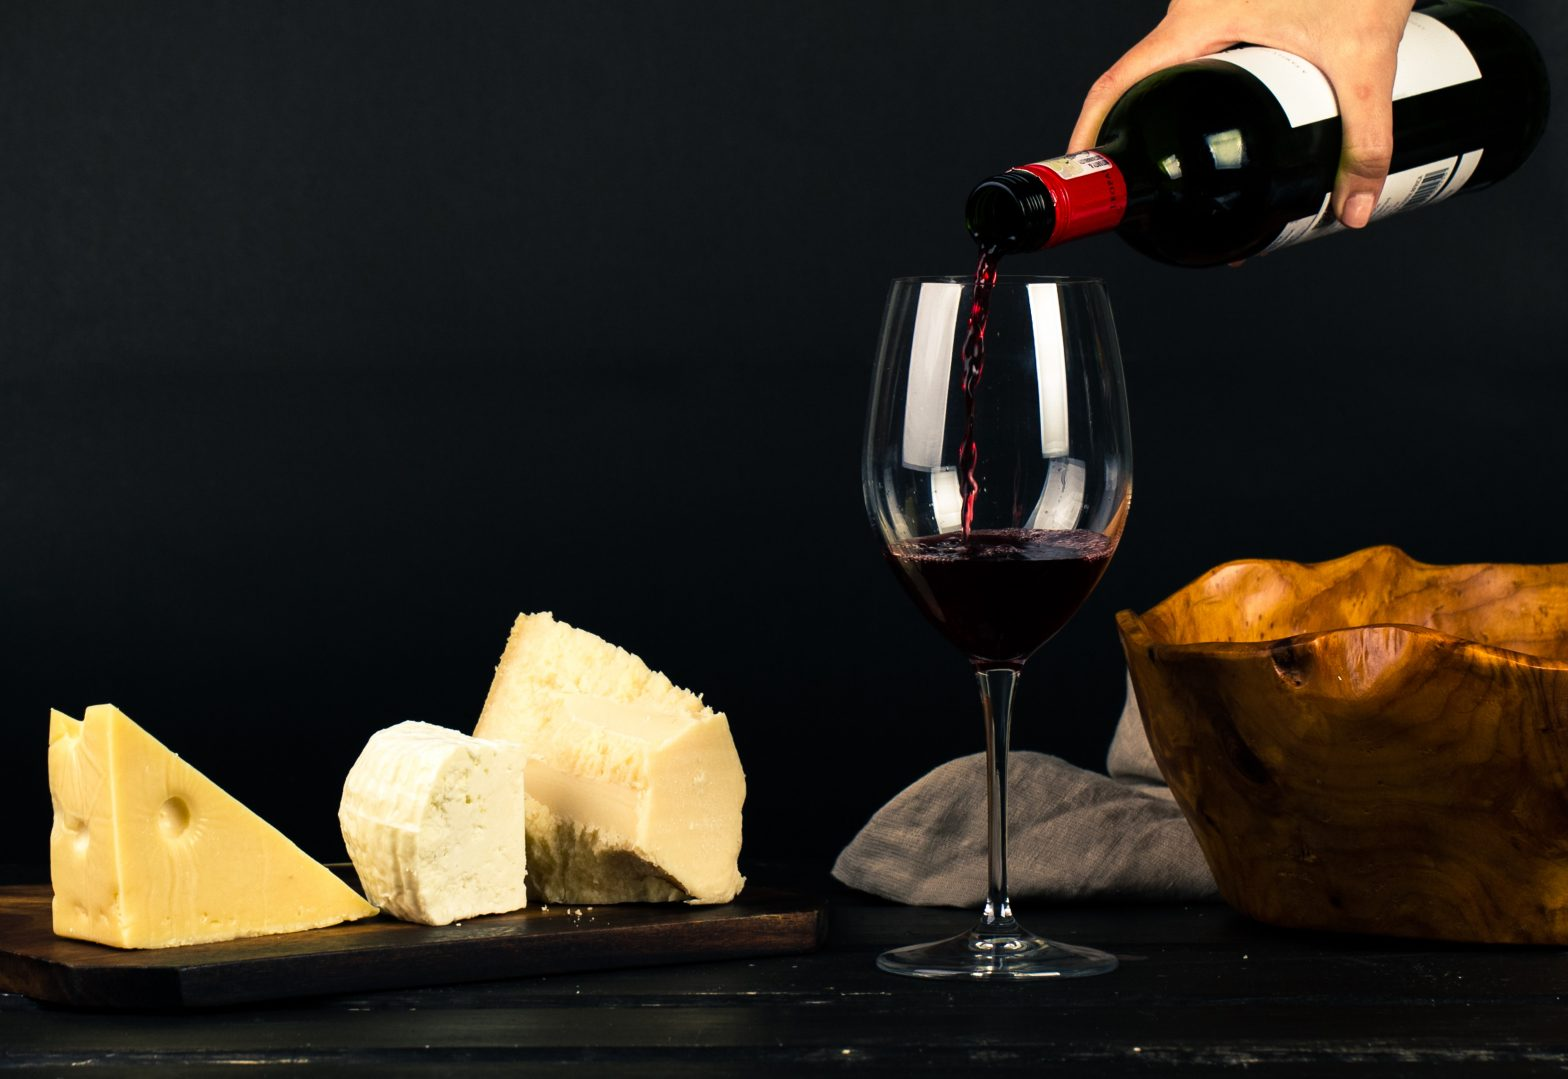 wine and cheese Photo by Ray Piedra from Pexels